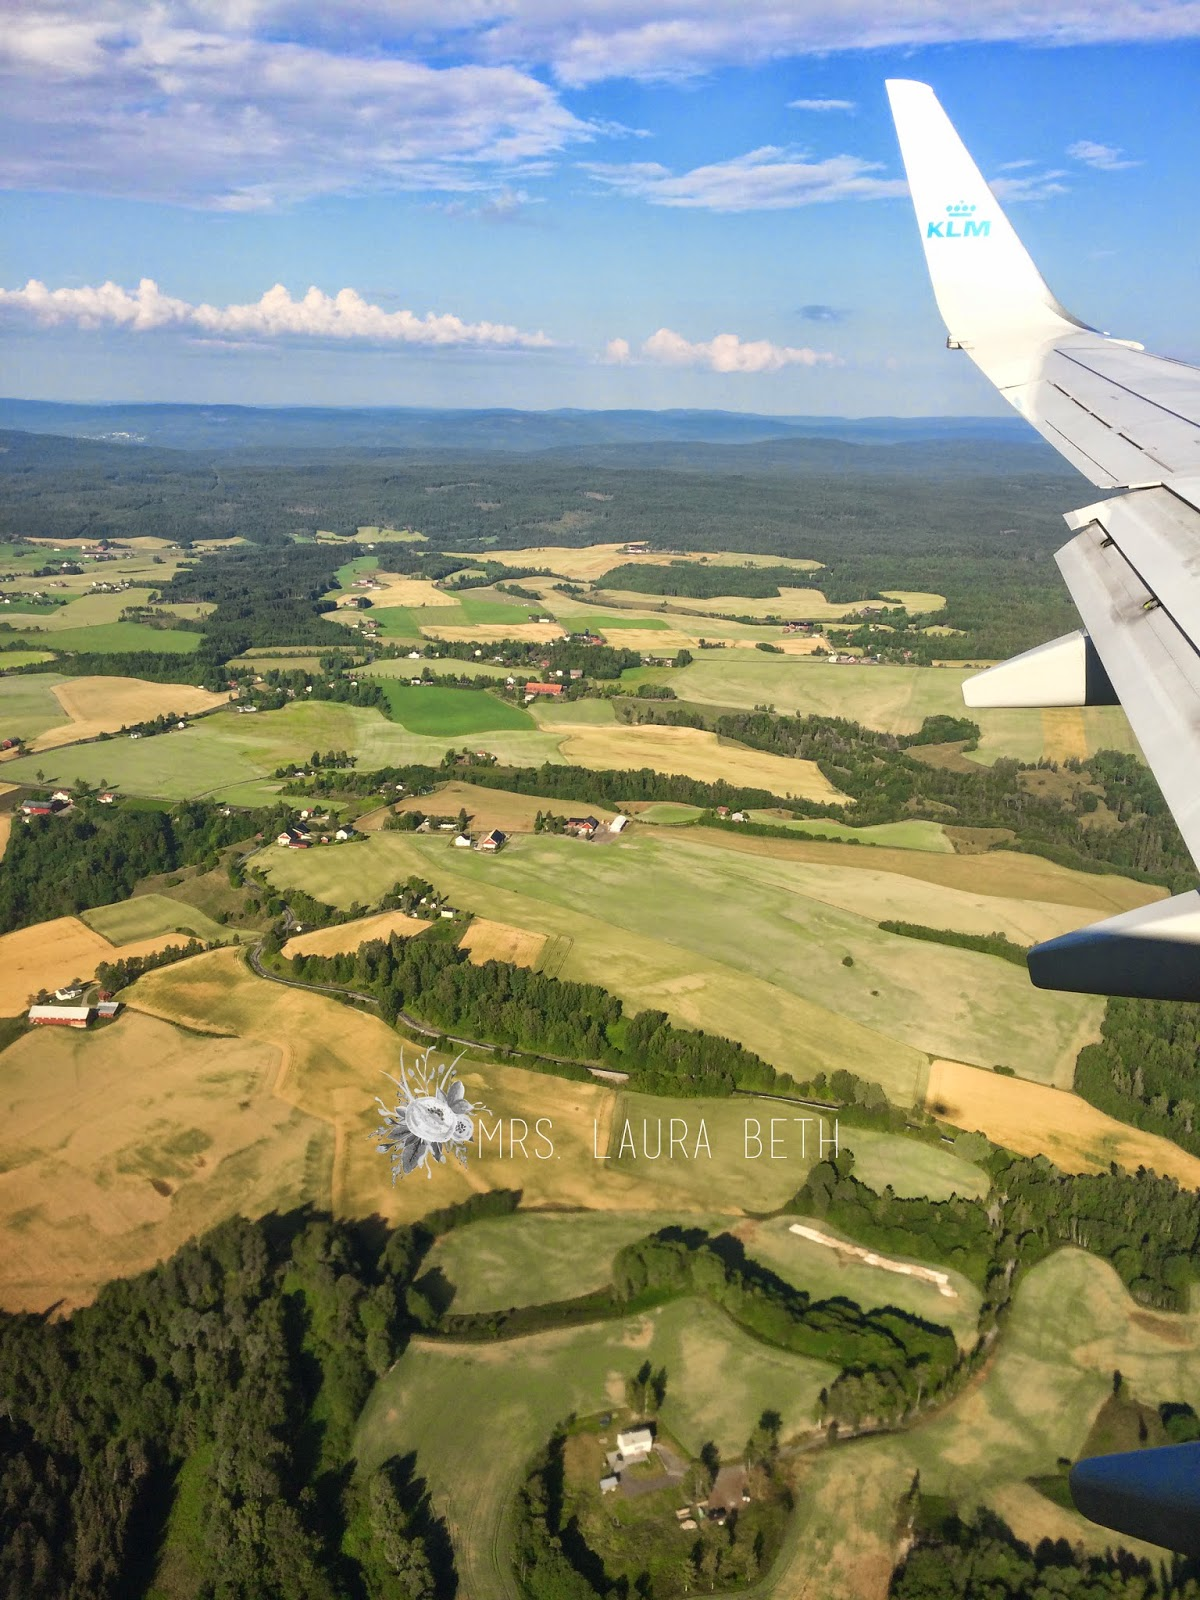 Norway, landscape, klm